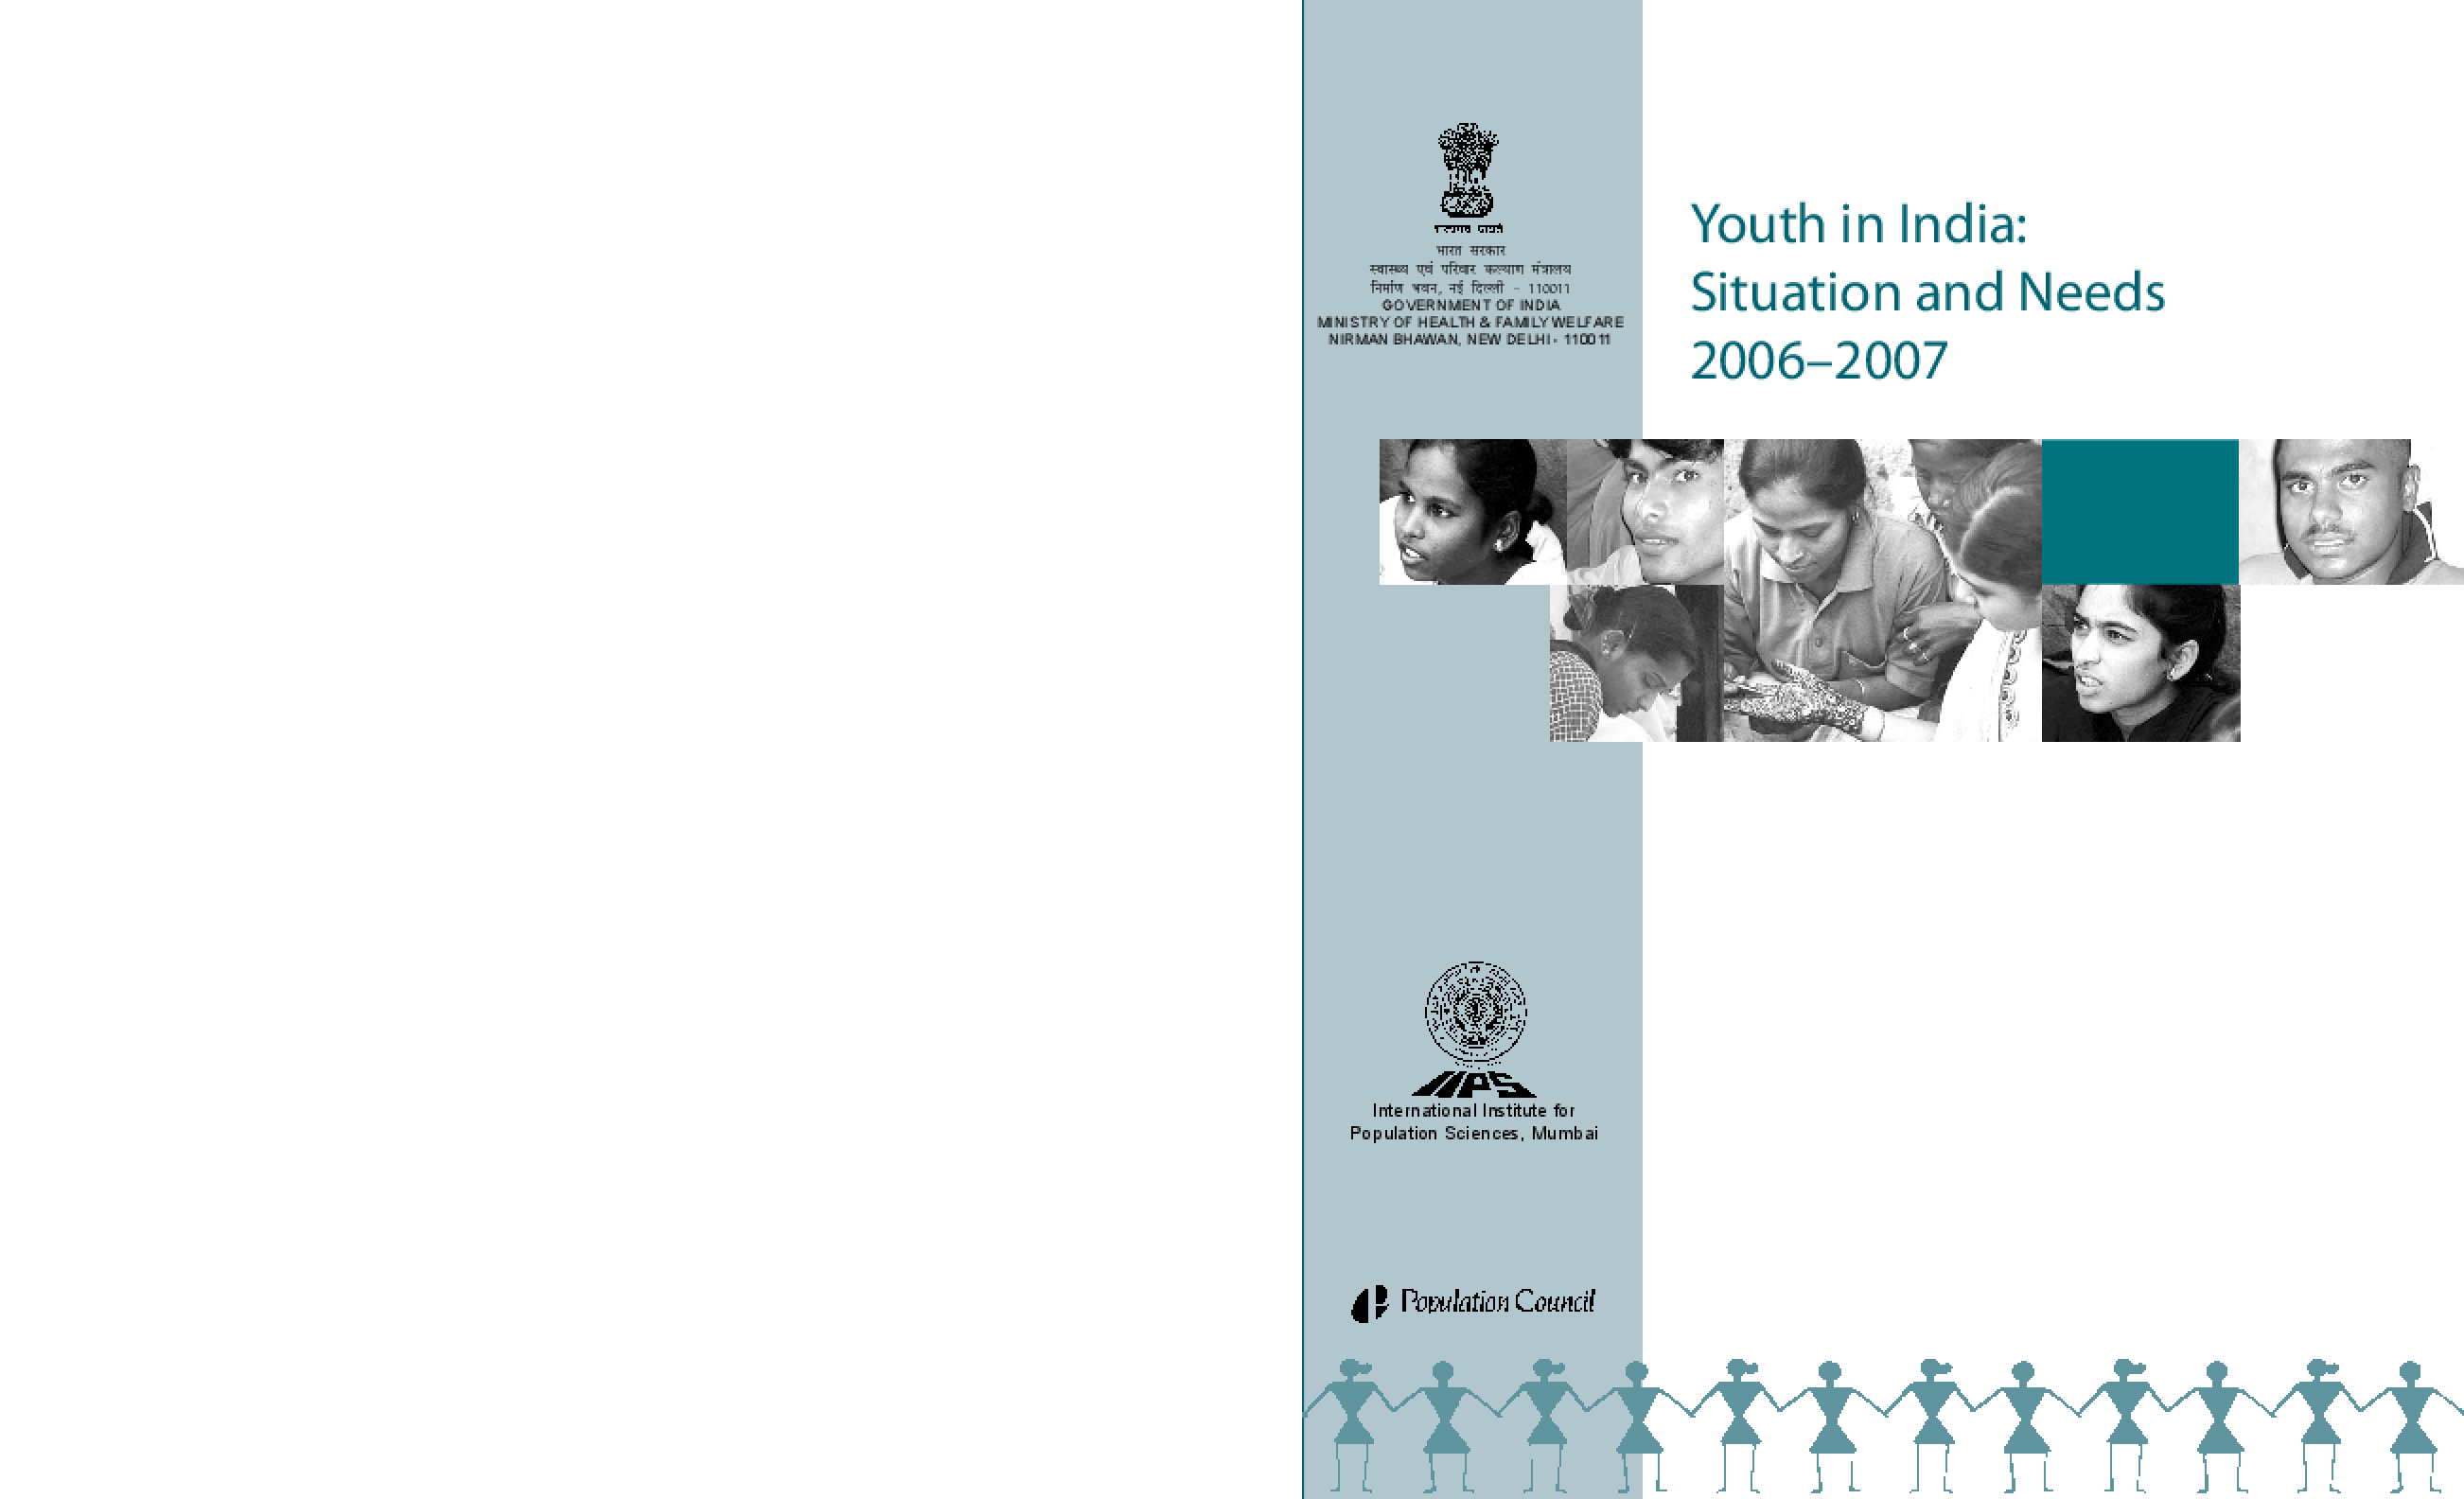 Youth in India: Situation and Needs Study 2006-2007